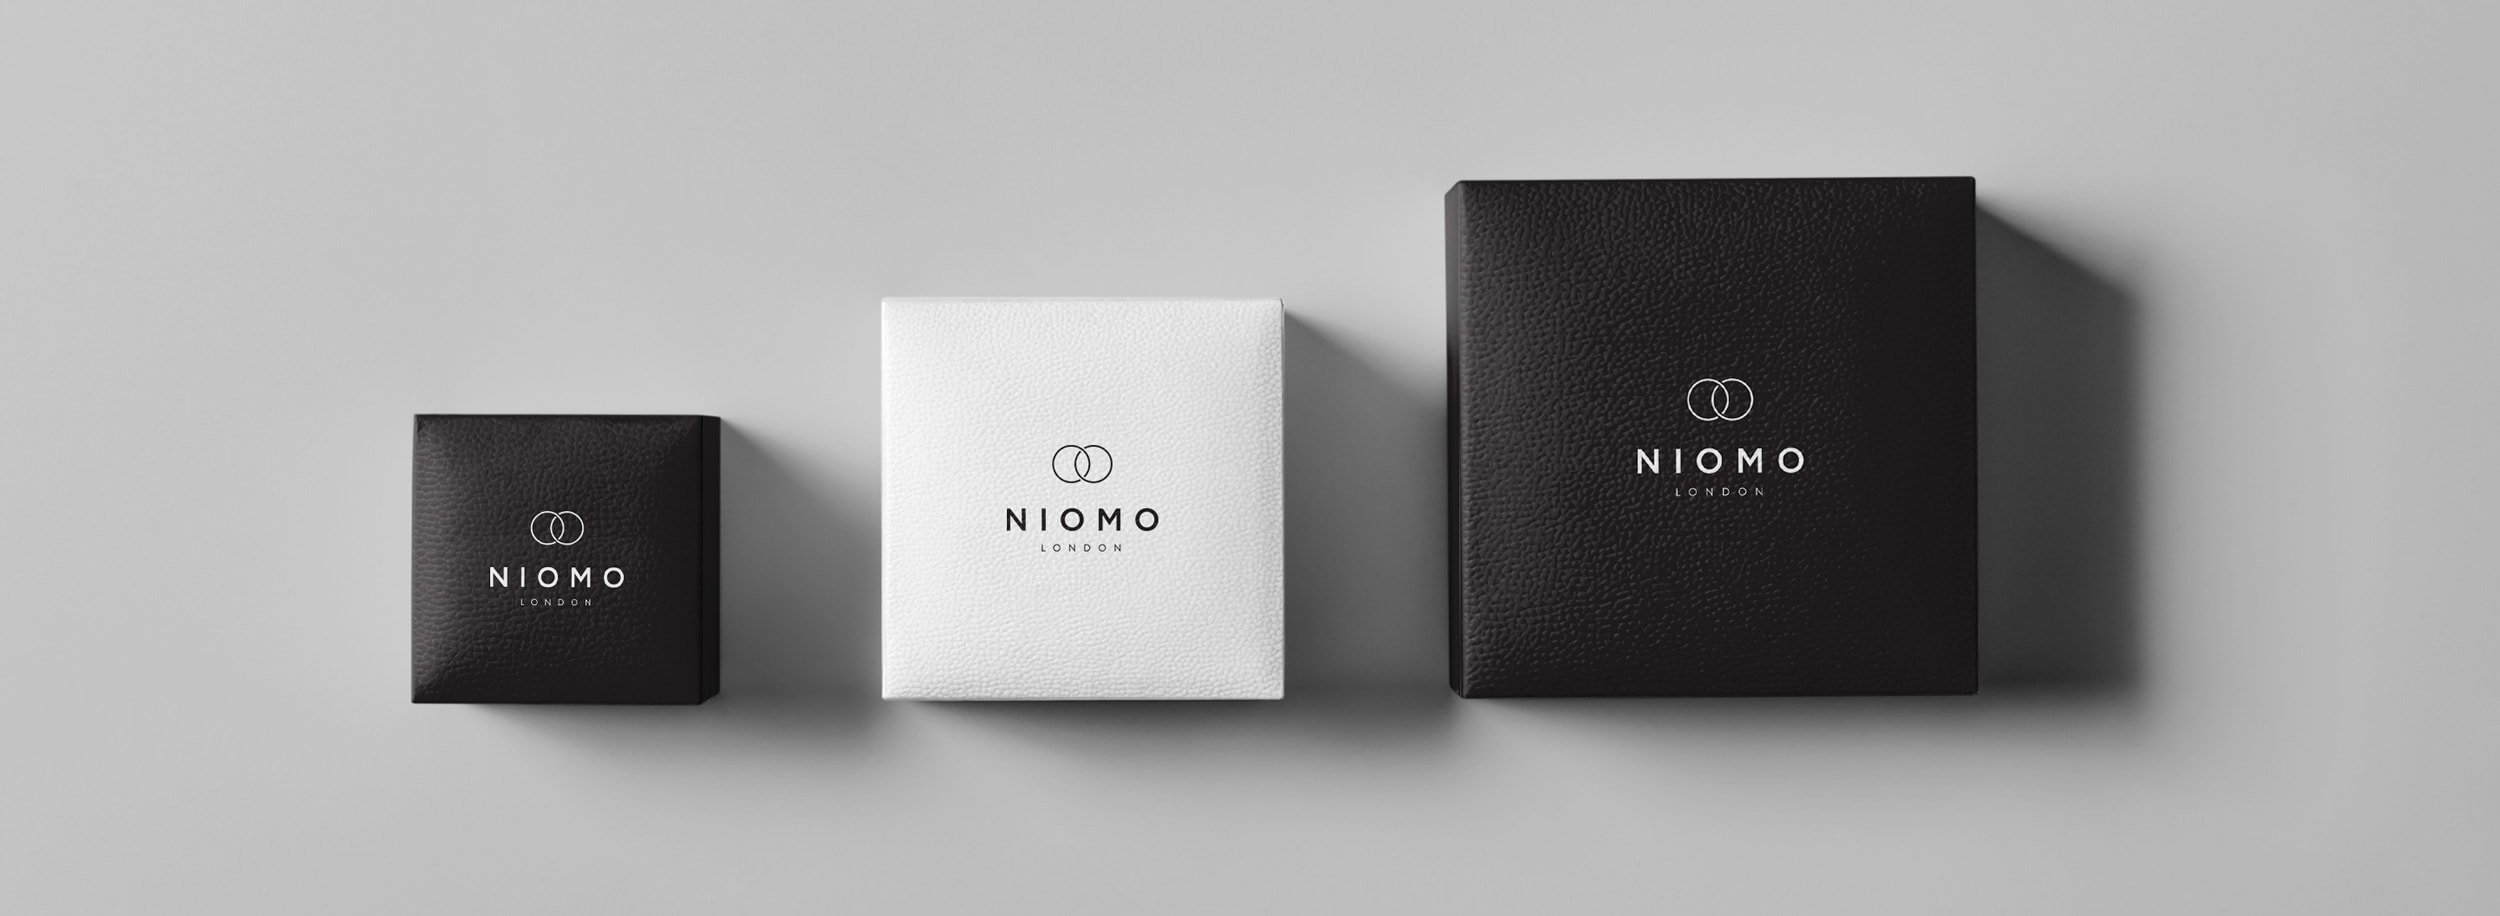 Niomo: branded jewelry boxes